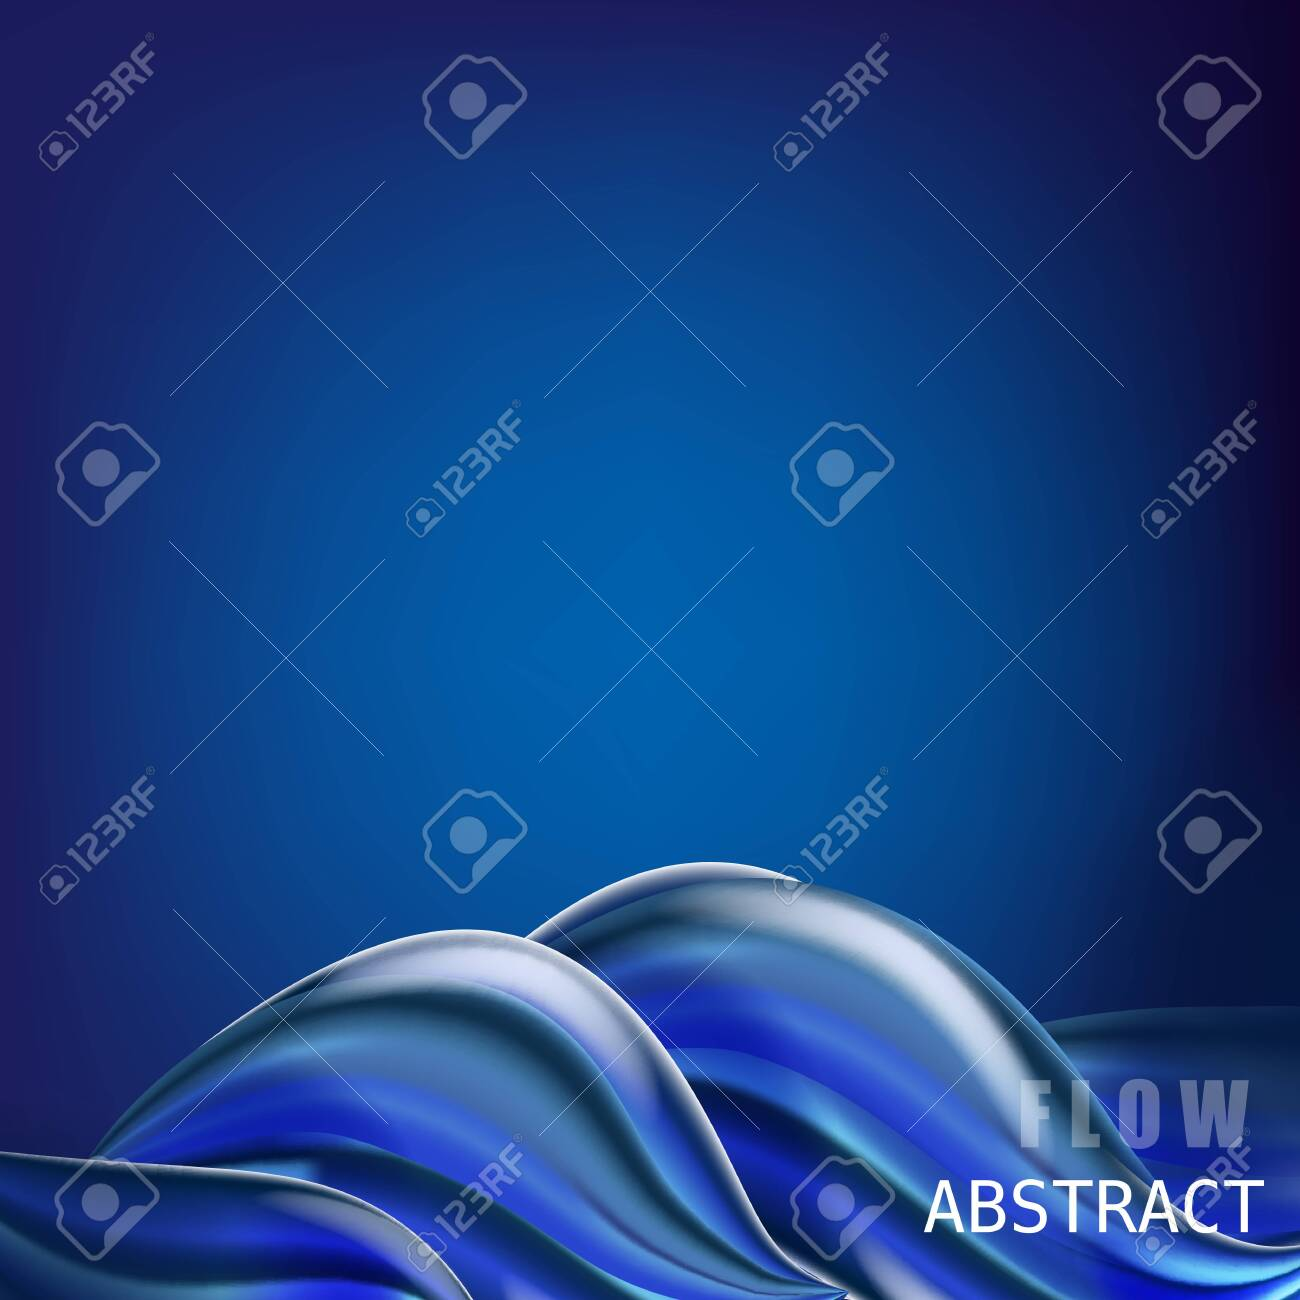 Trendy abctract colorful flow poster, baner, template. Wave Liquid shape in blue color - 128097609